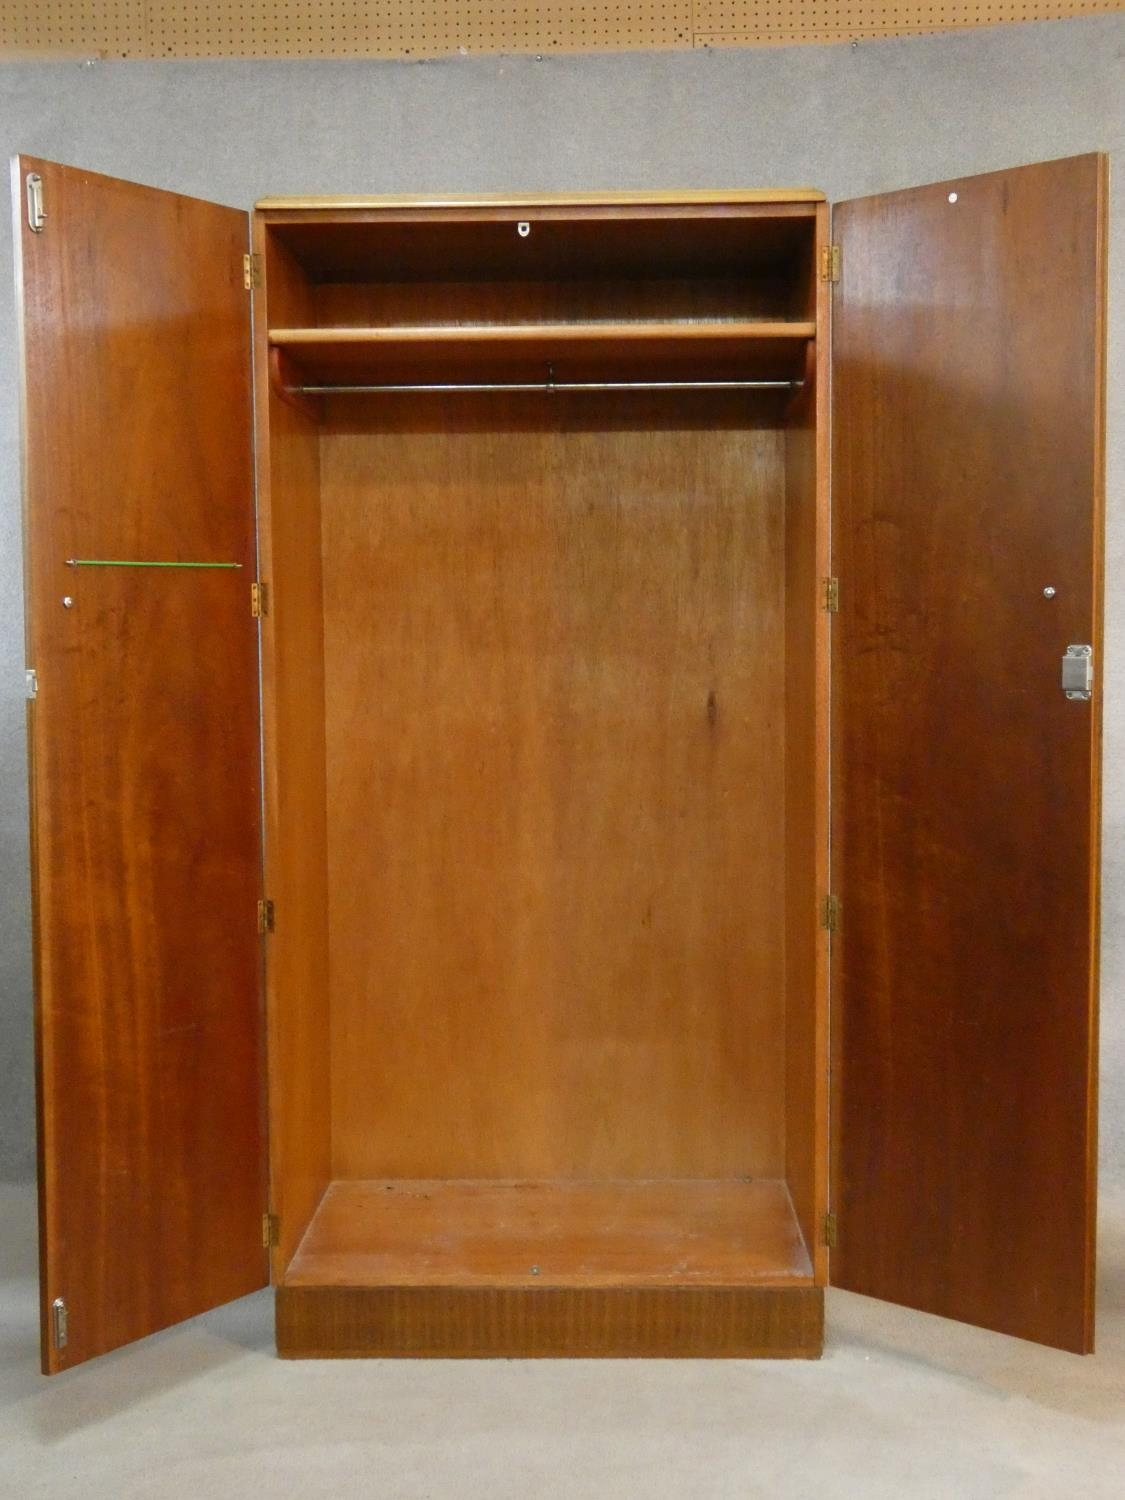 A 1960's teak wardrobe fitted with shelf and hanging space with inset Heal's disc to the inside of - Image 3 of 6